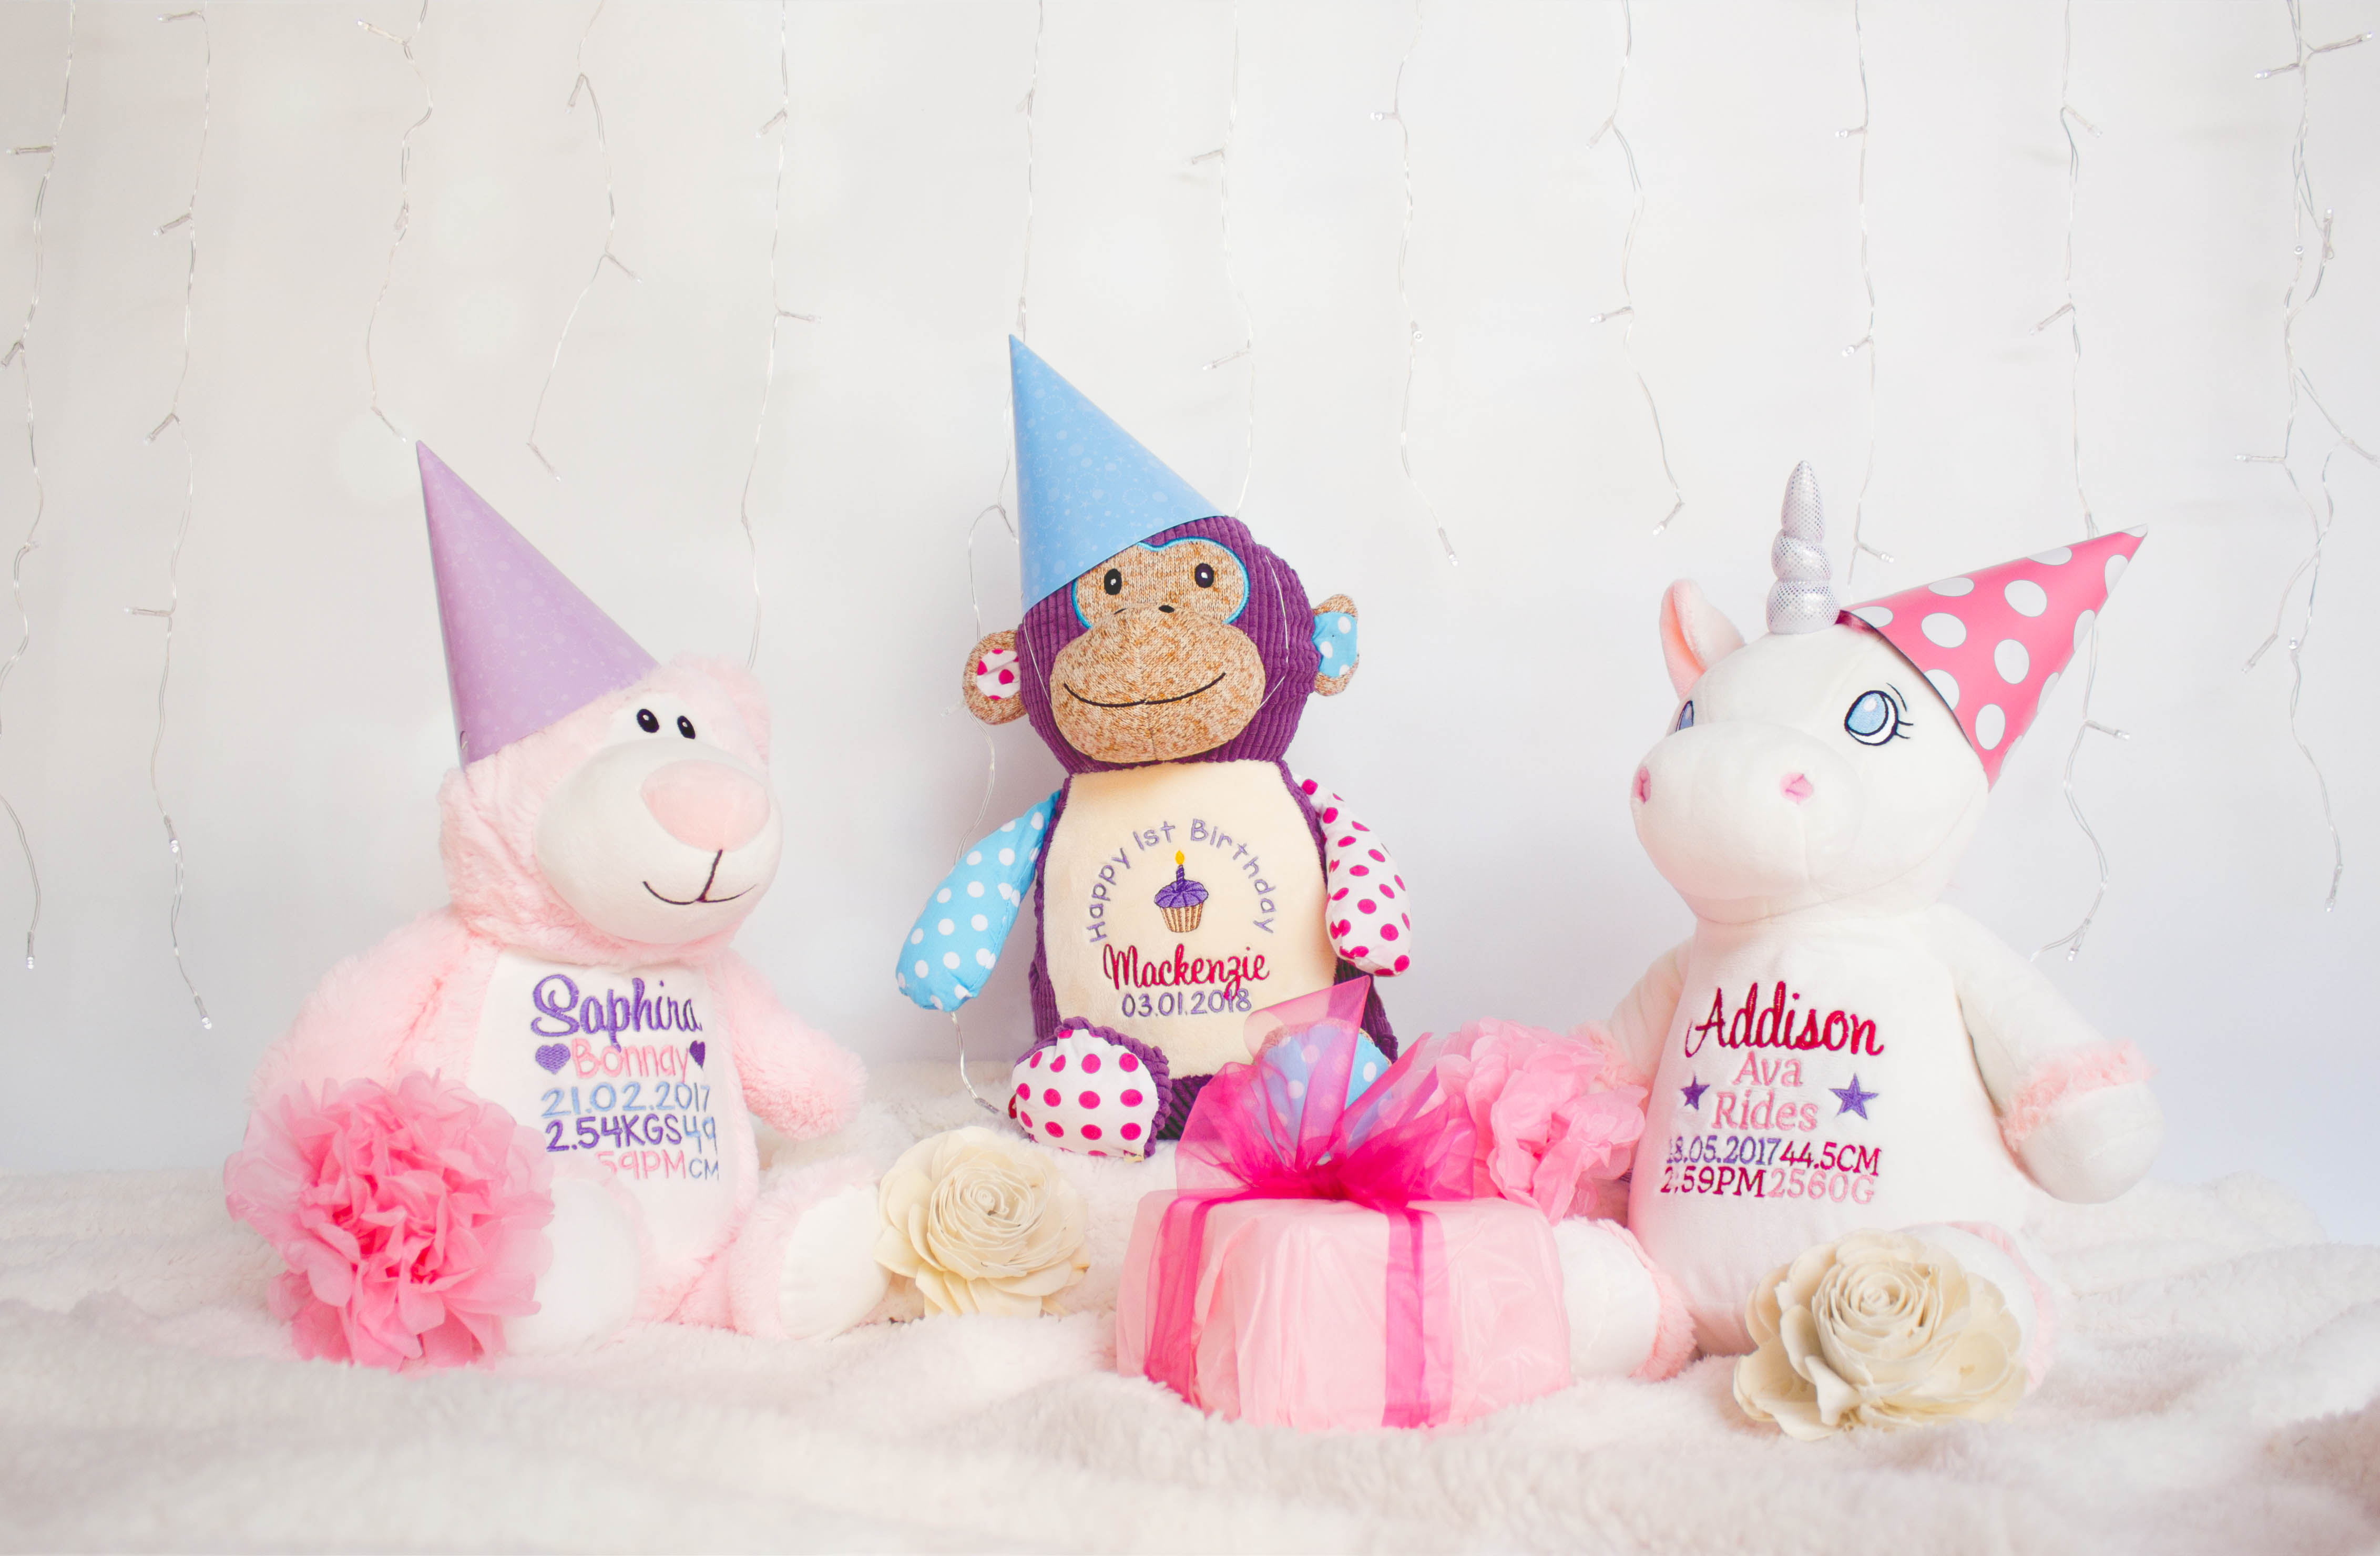 Teddy bears personalised gifts myteddy birthday gift ideas for babies and kids negle Gallery